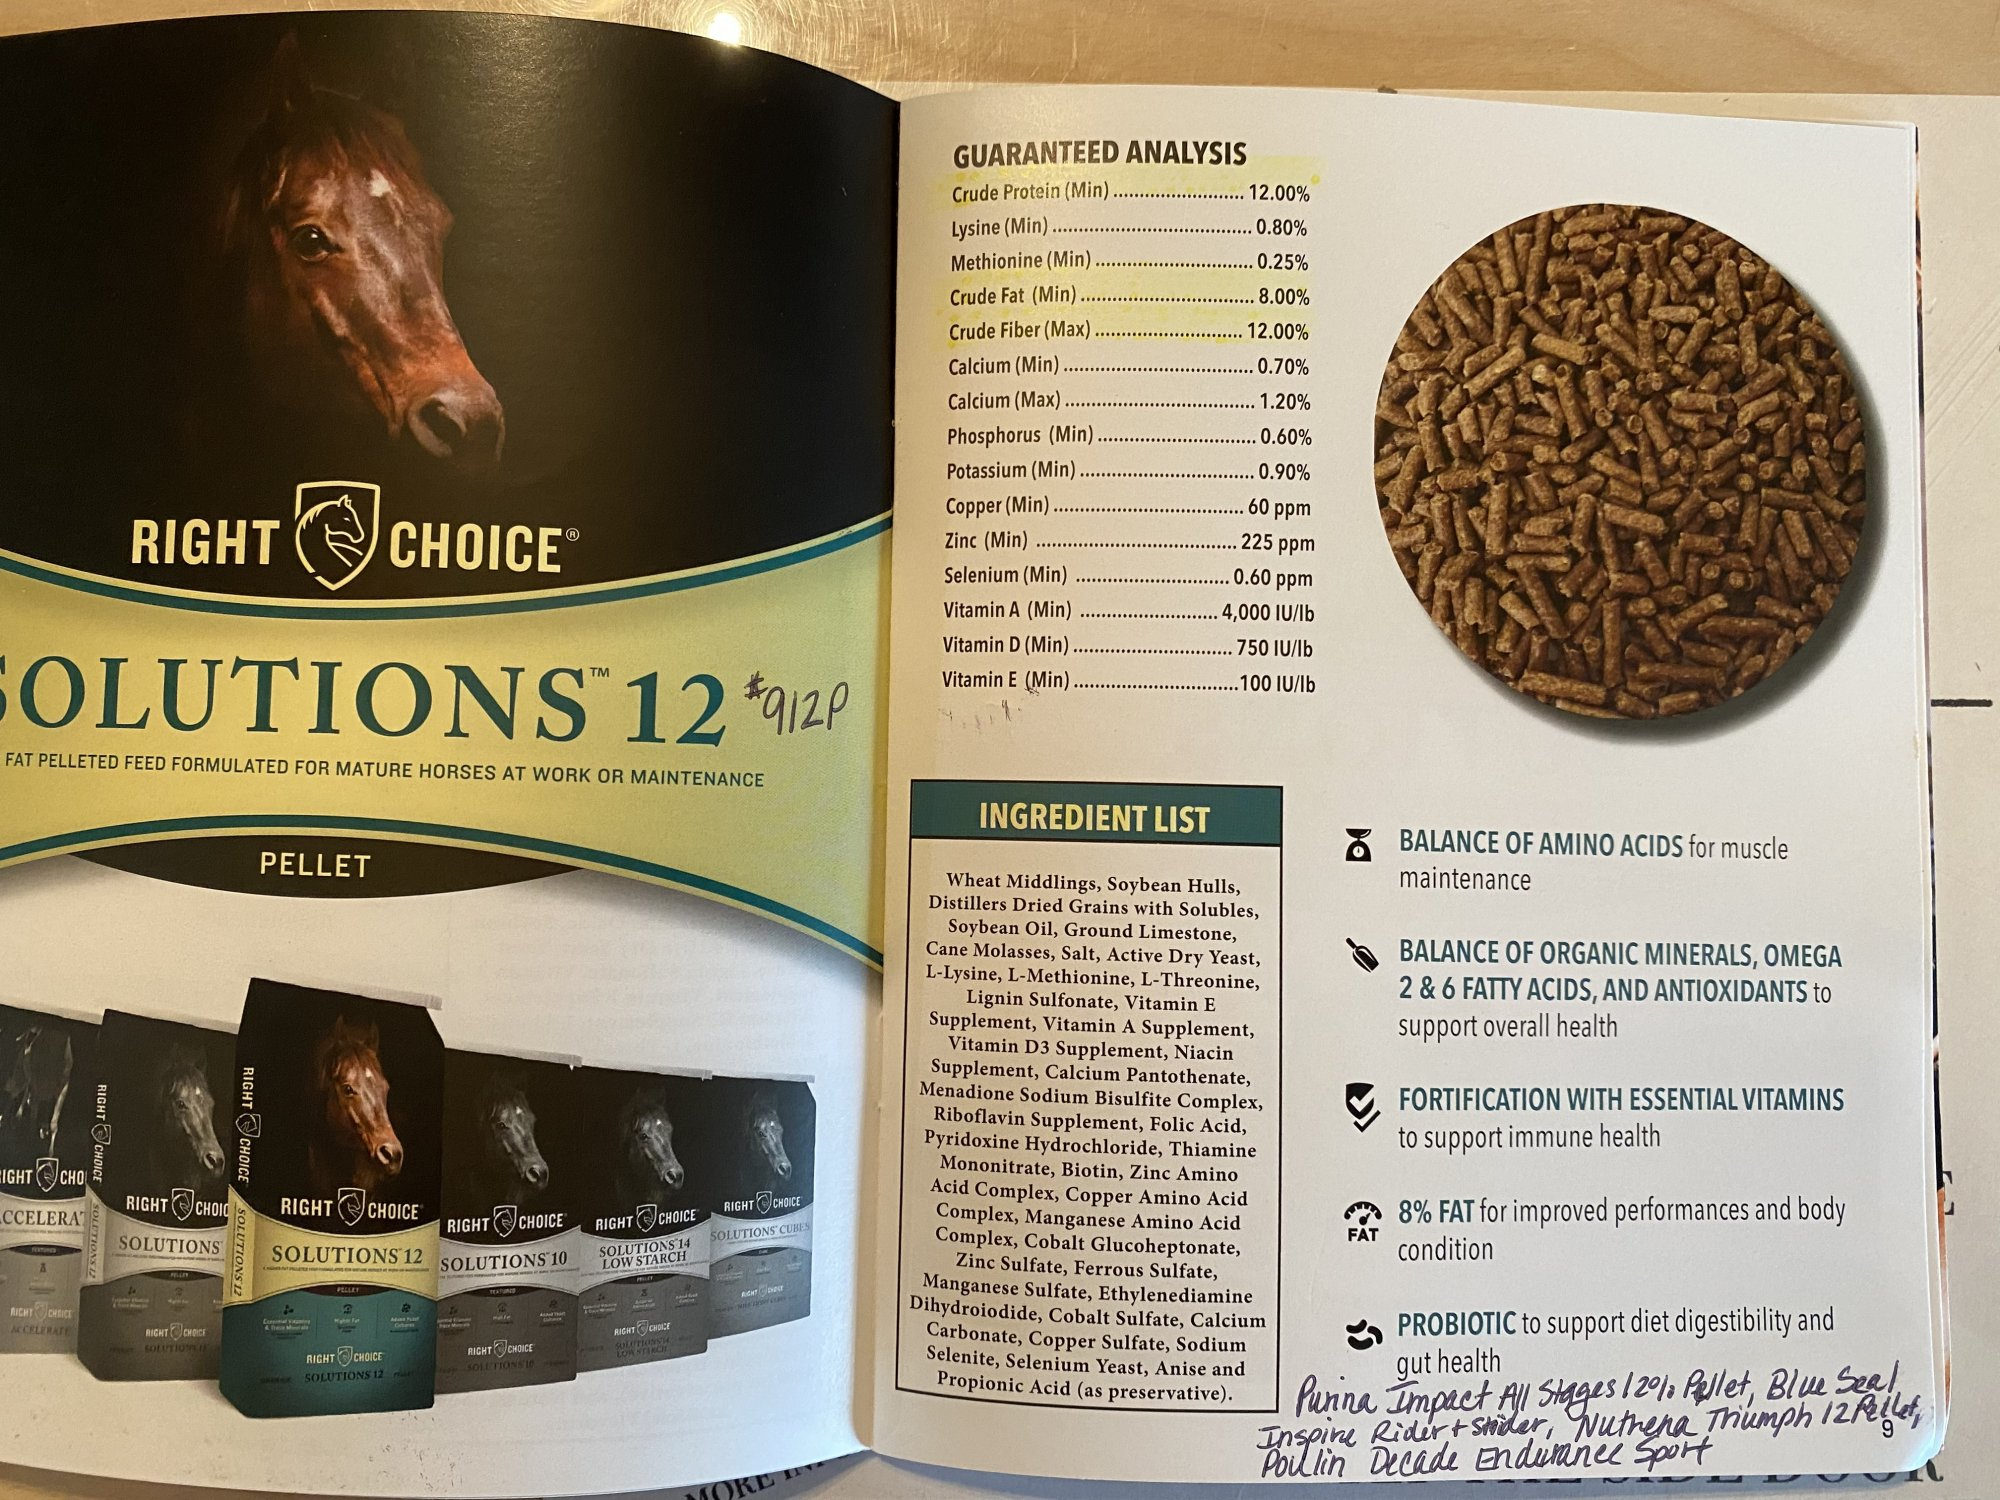 KALMBACH RIGHT CHOICE SOLUTIONS 12 PELLET